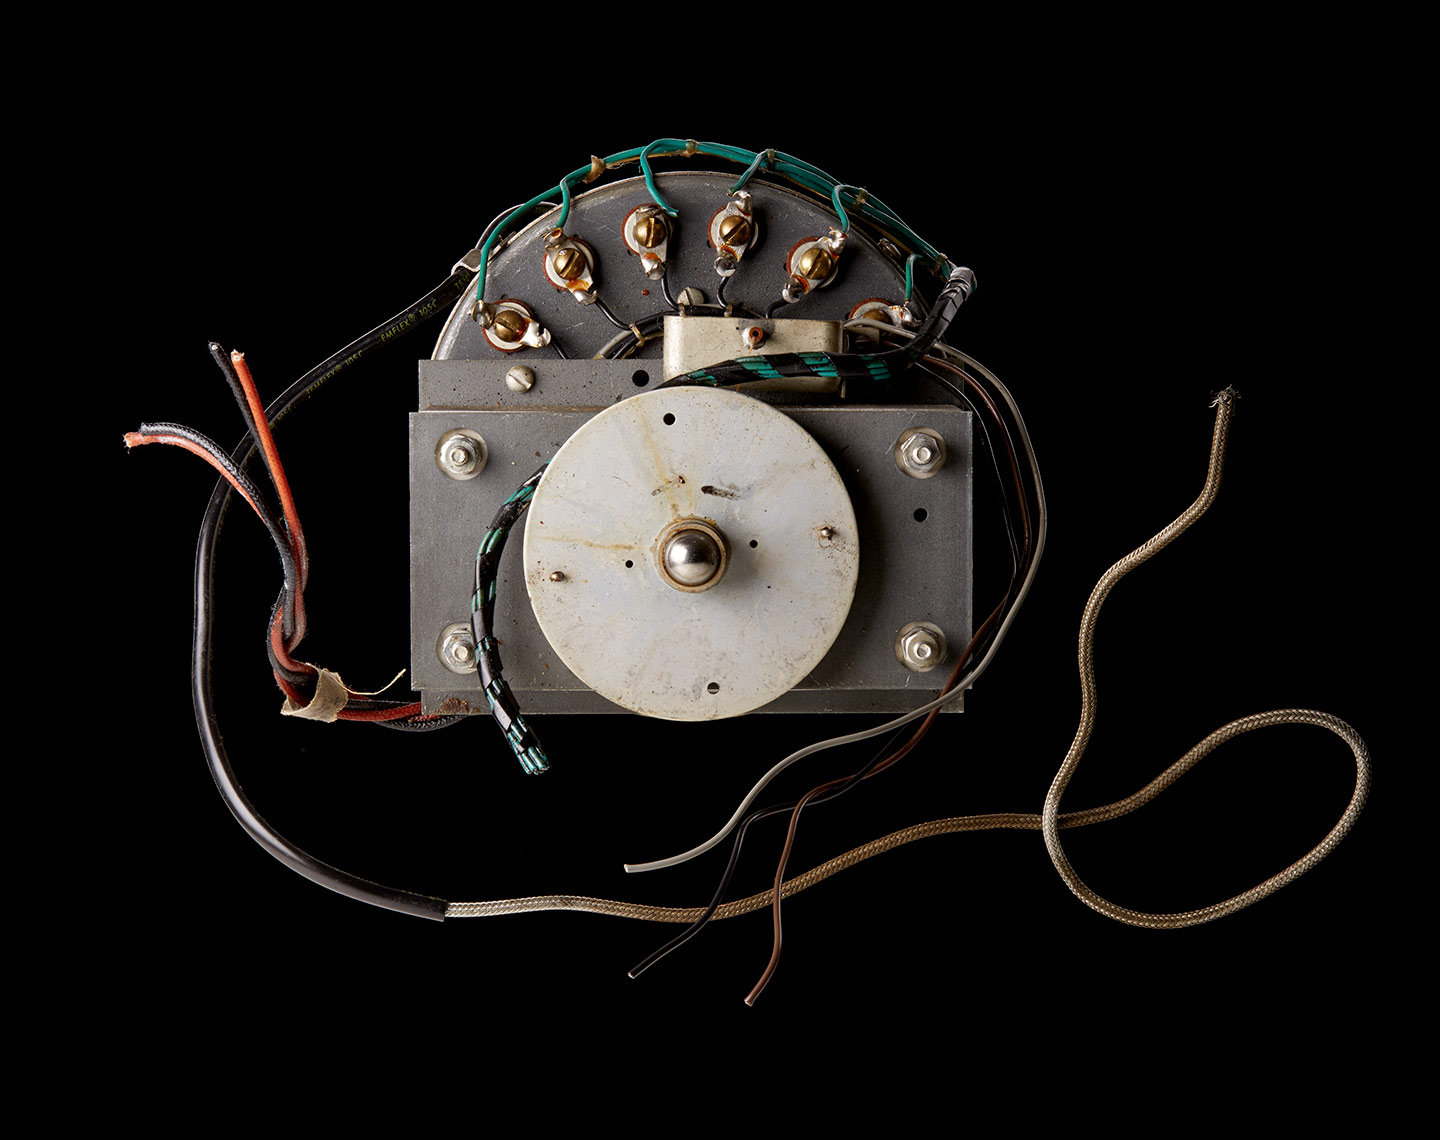 Analog_Hammond_Motor_FocusStack1_w4_RESIZED_FOR_WEB